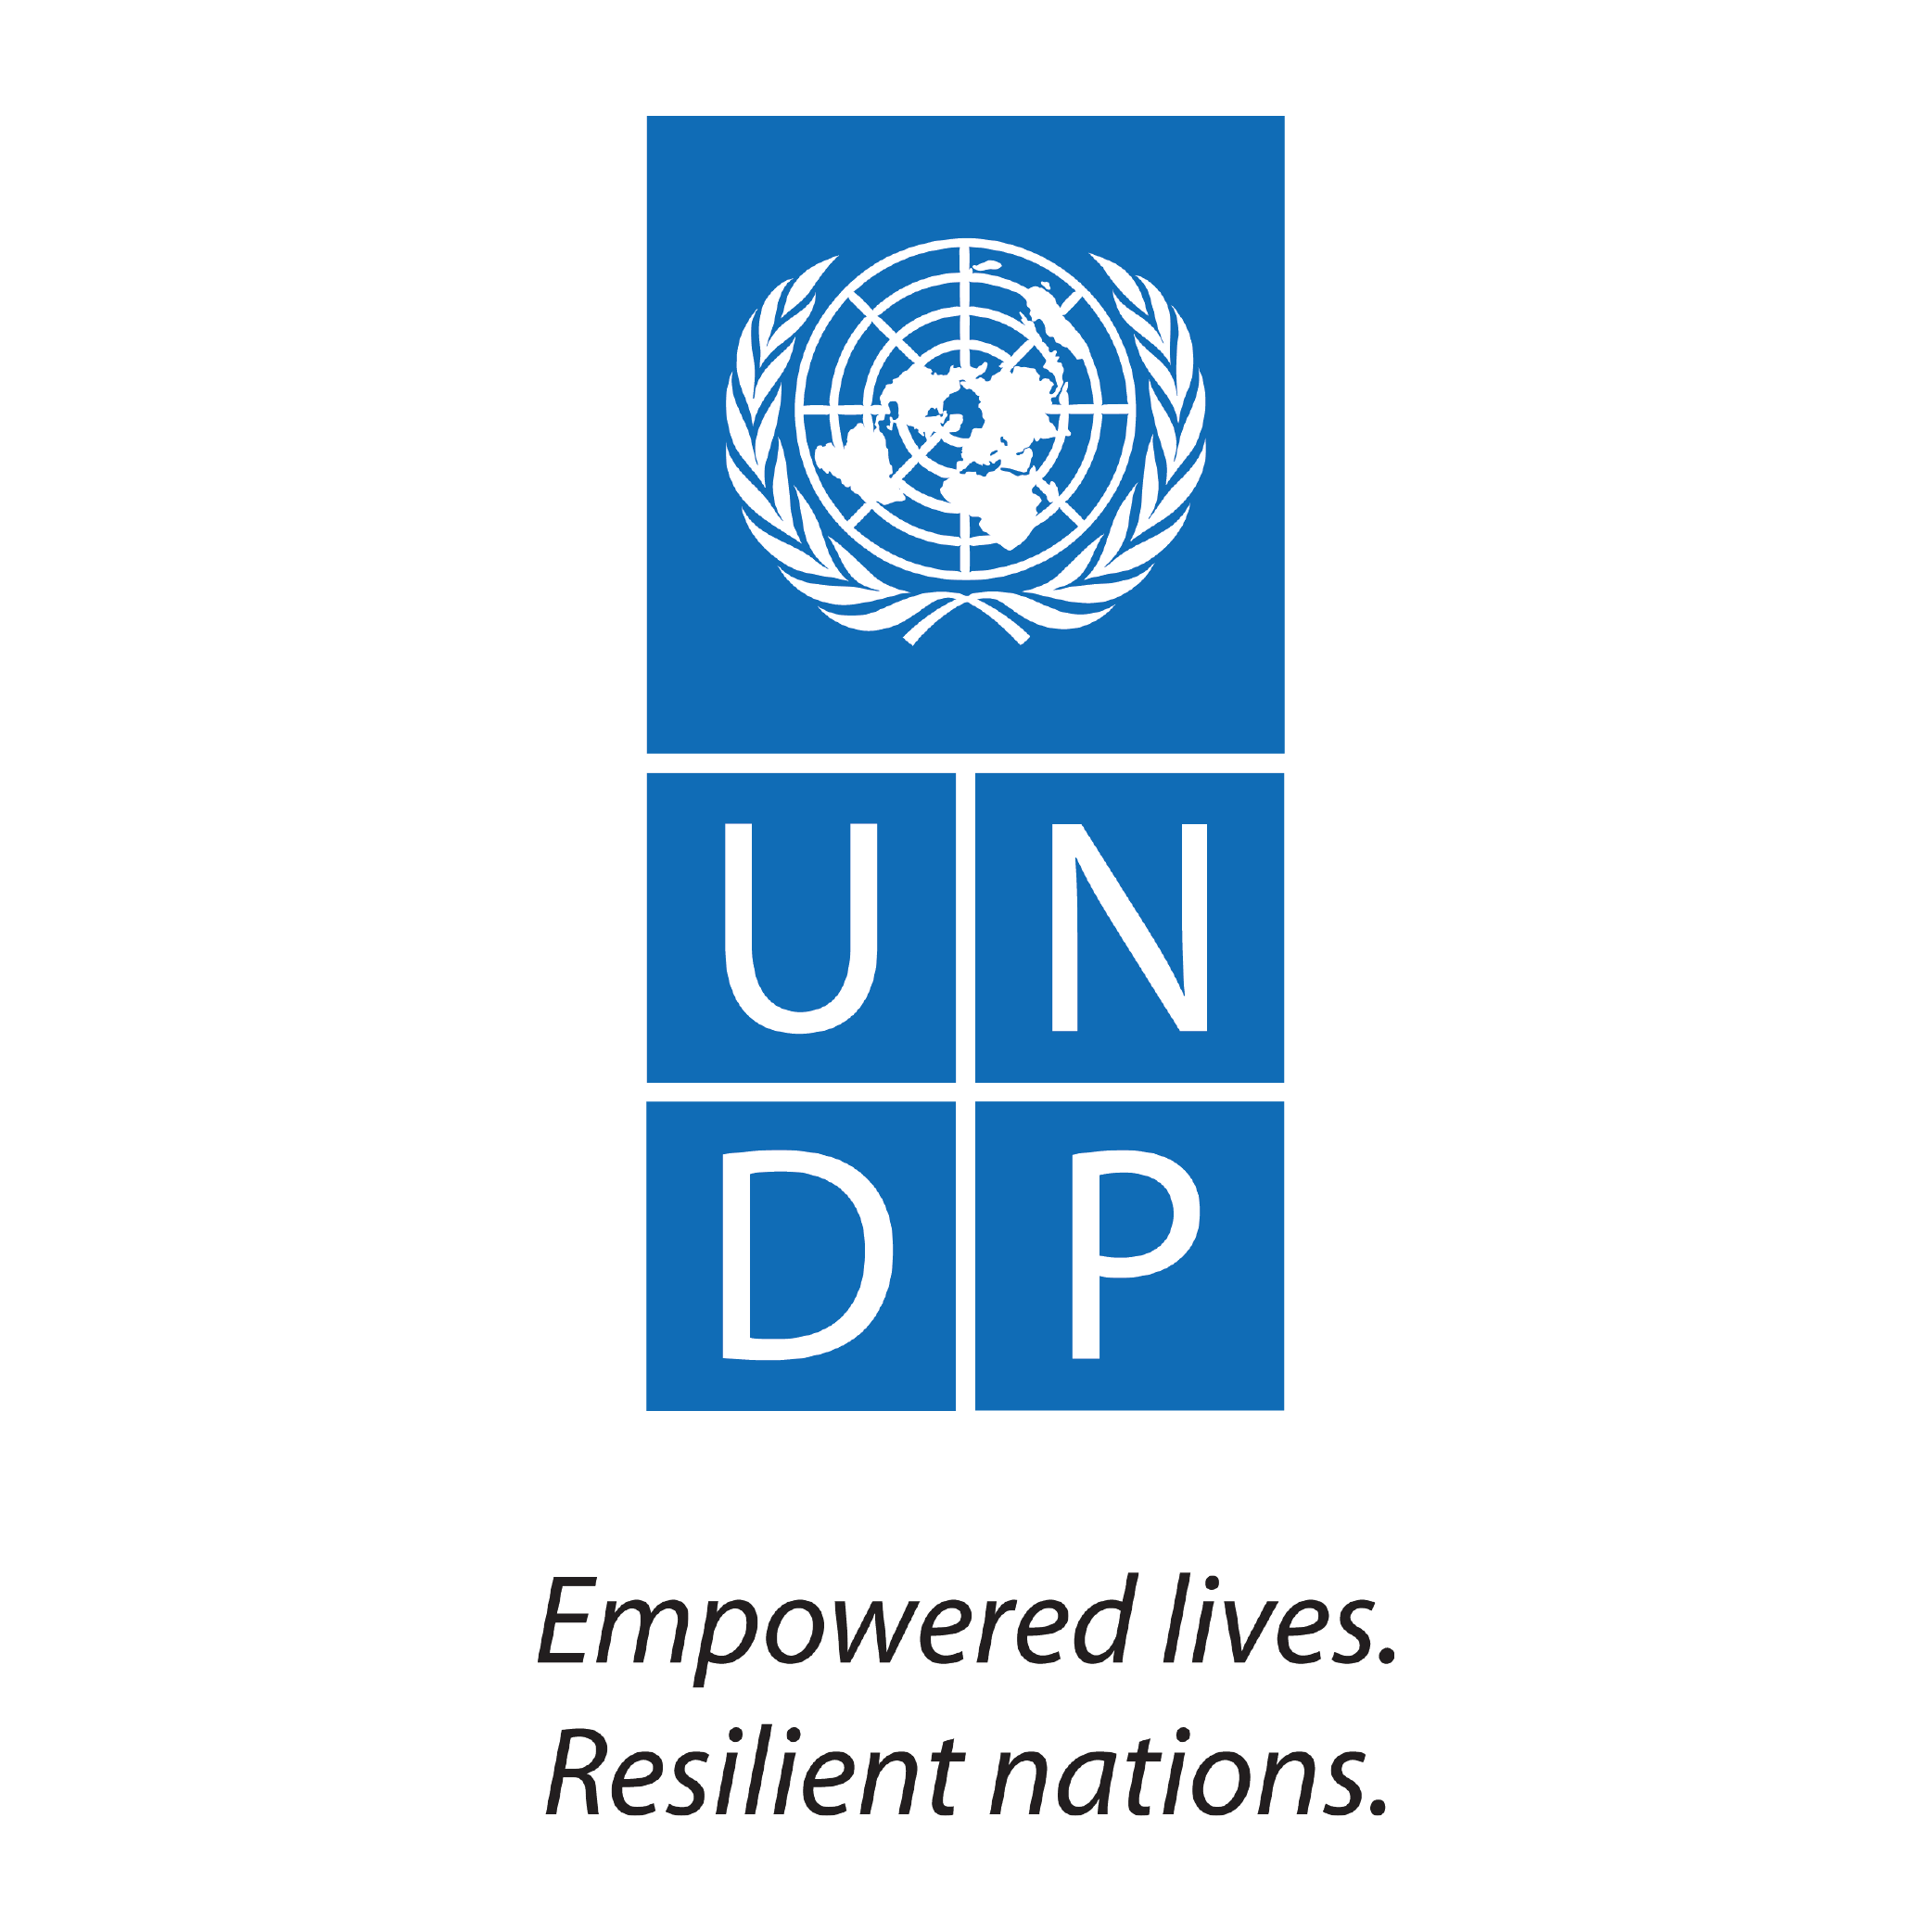 200219_ logo for website_UNDP